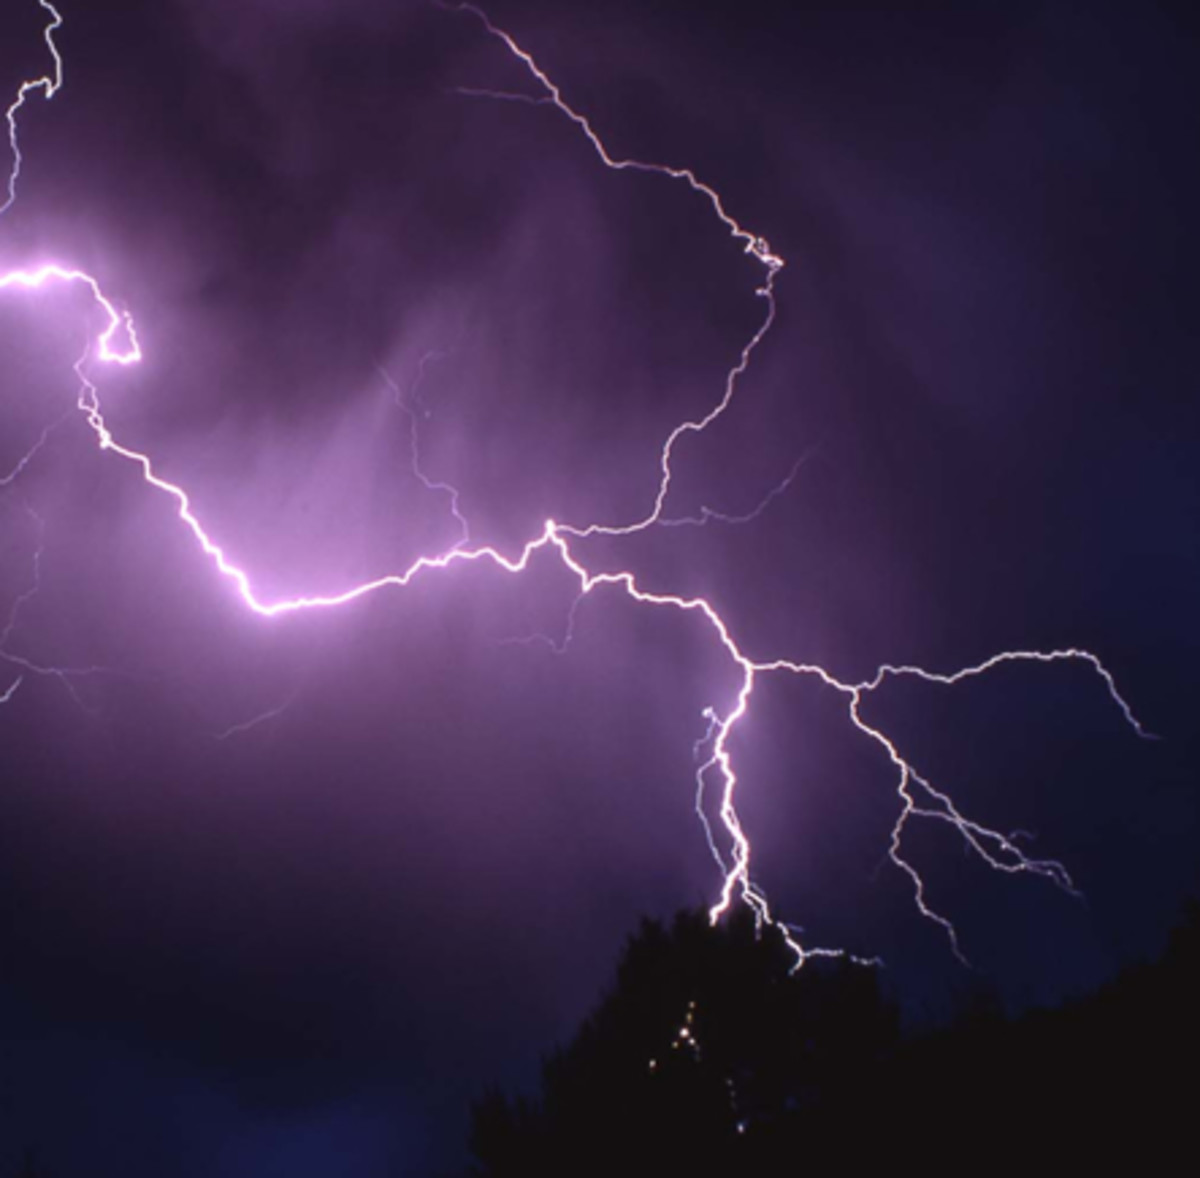 Multiple echoes produce thundering sounds as produced by the clouds